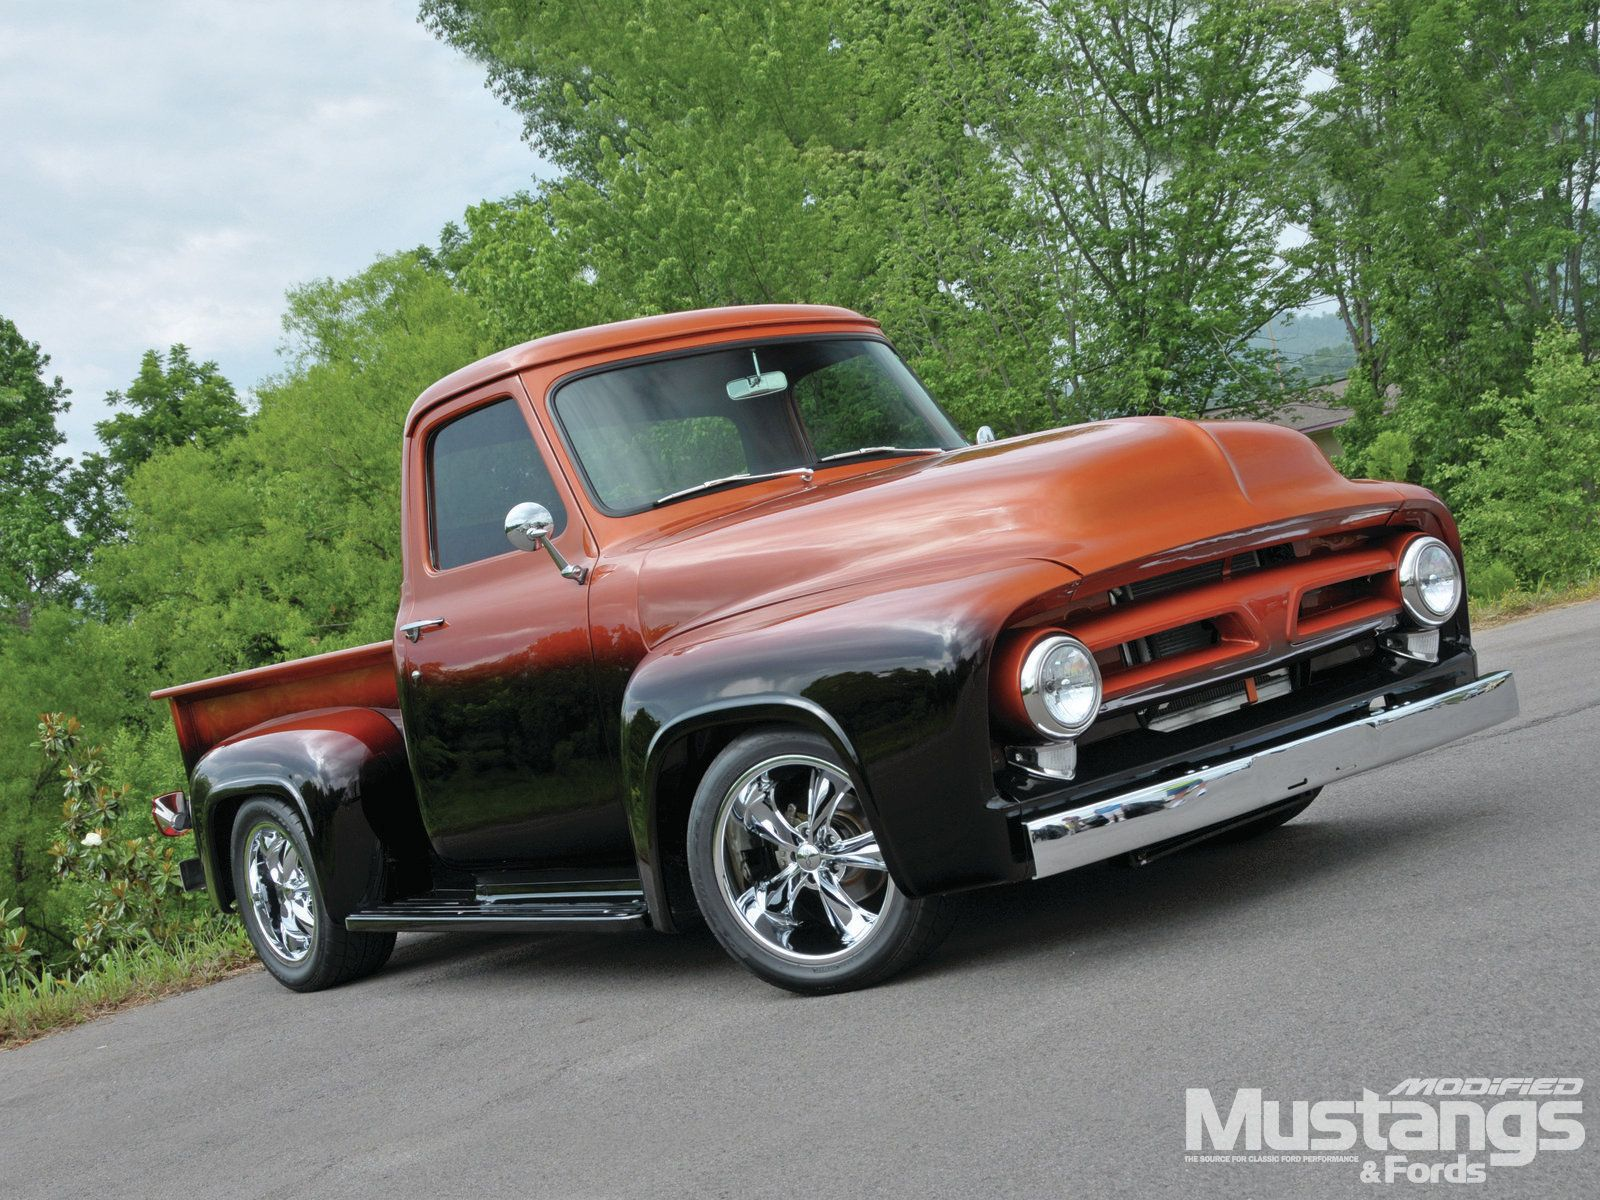 1953 F100 I Love The Lines Of This Two Tone Paint Just Not My